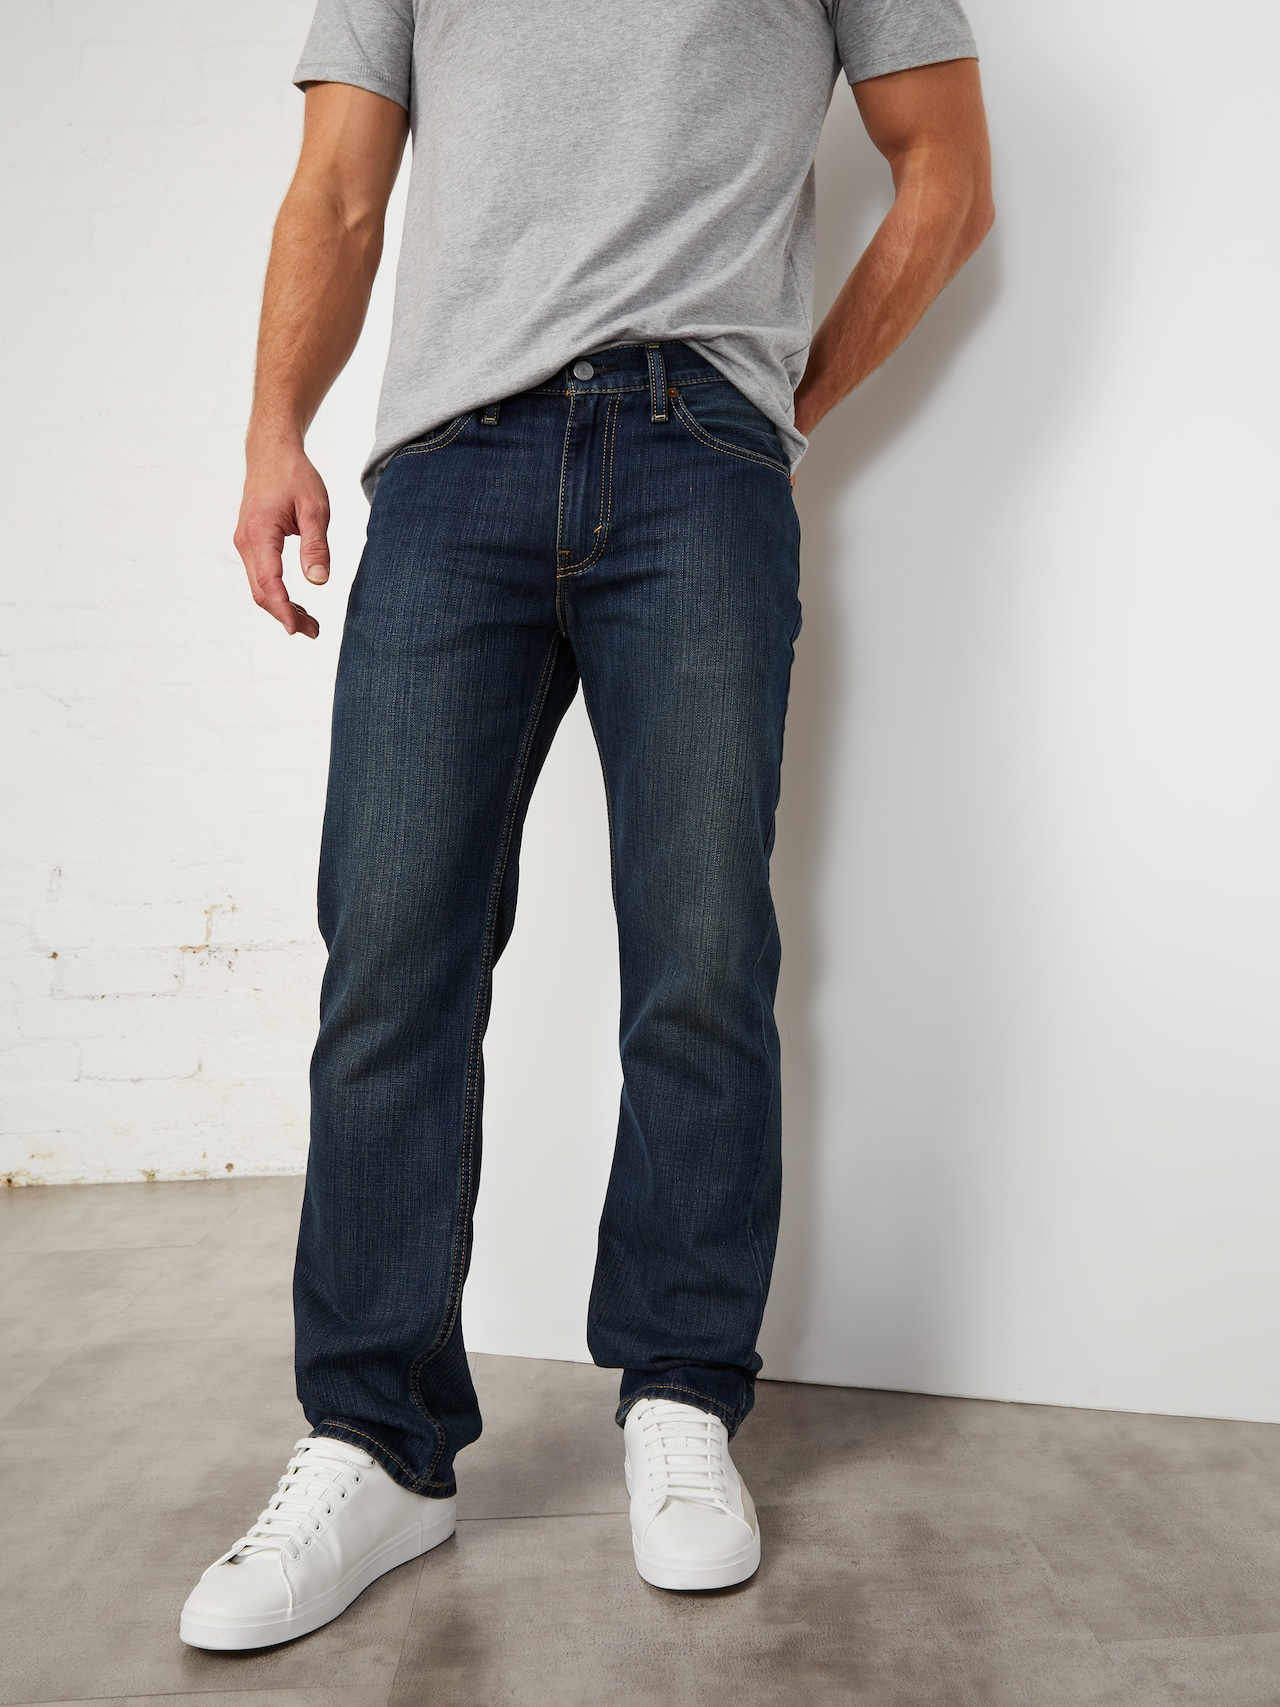 a19cce9b44f Levi's 514 Straight Jean In Corben - Just Jeans Online